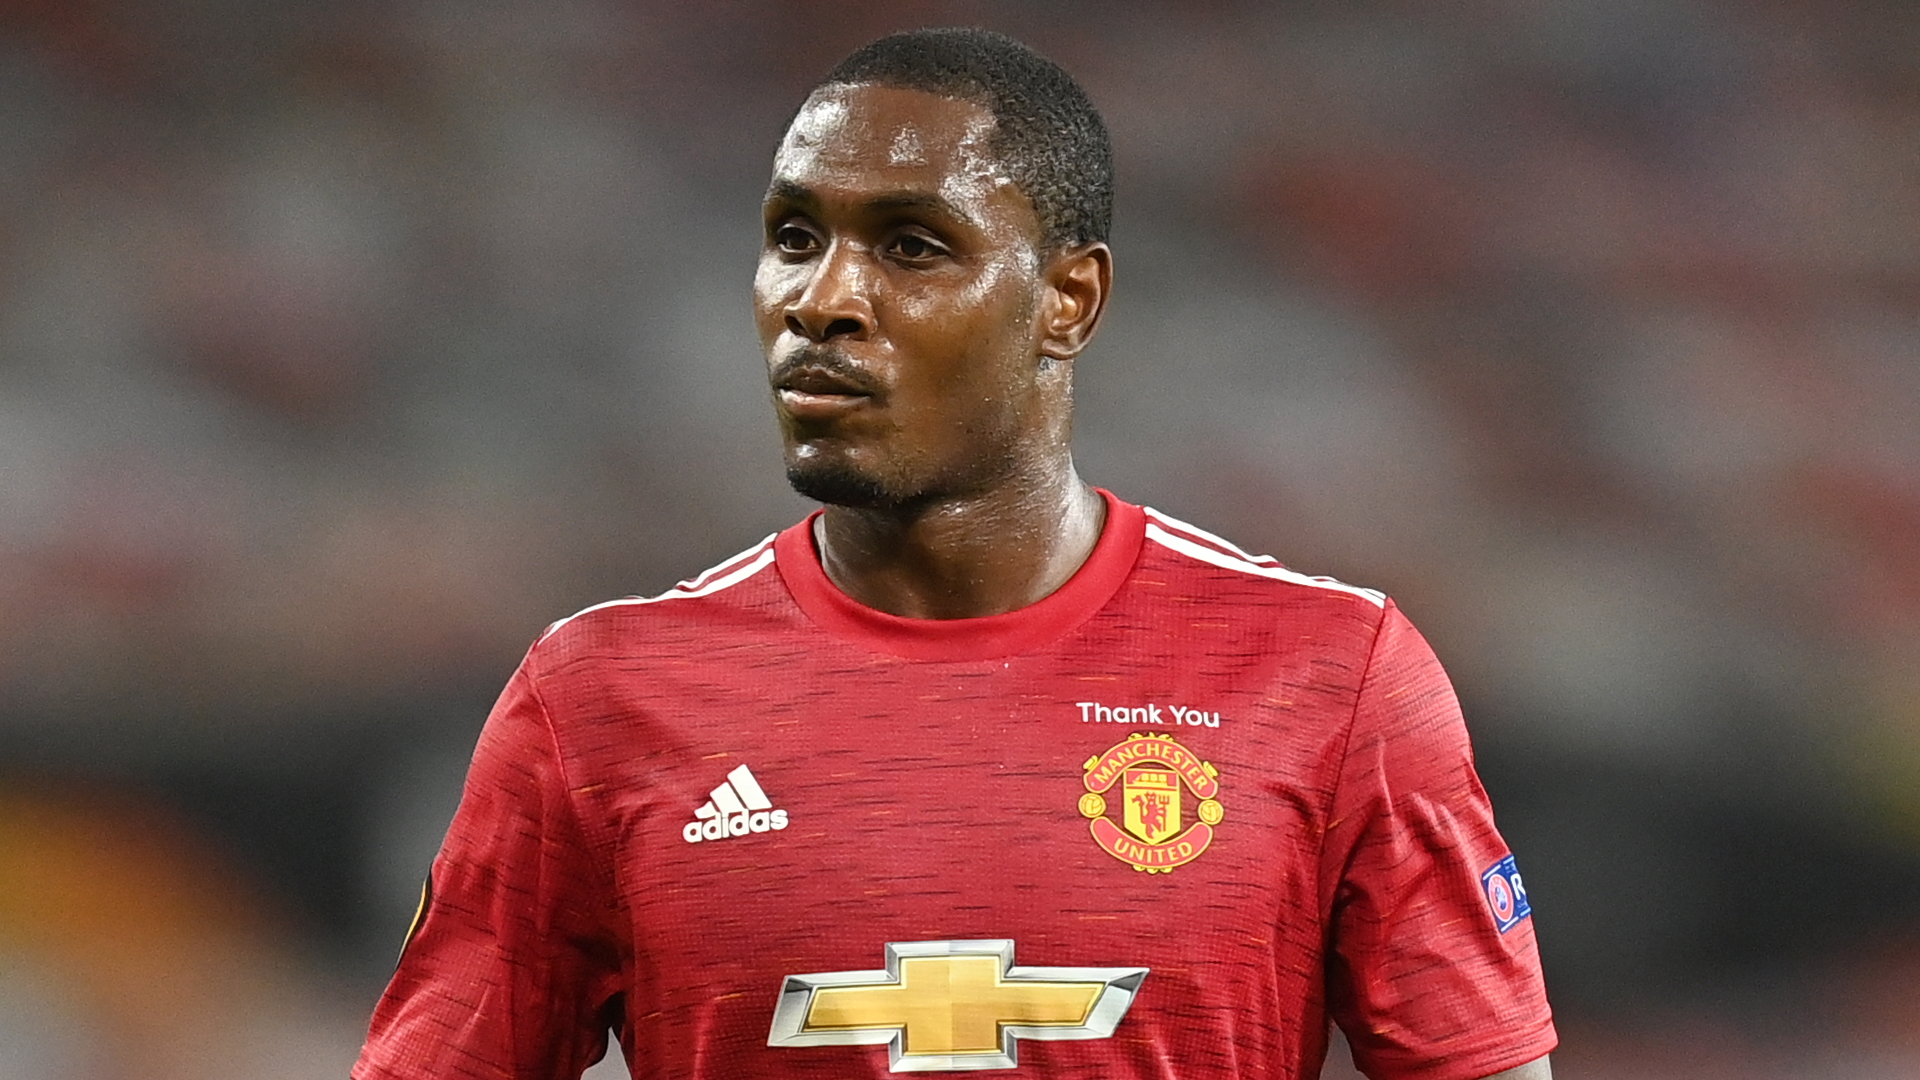 Ighalo makes Champions League debut in Manchester United's loss to PSG